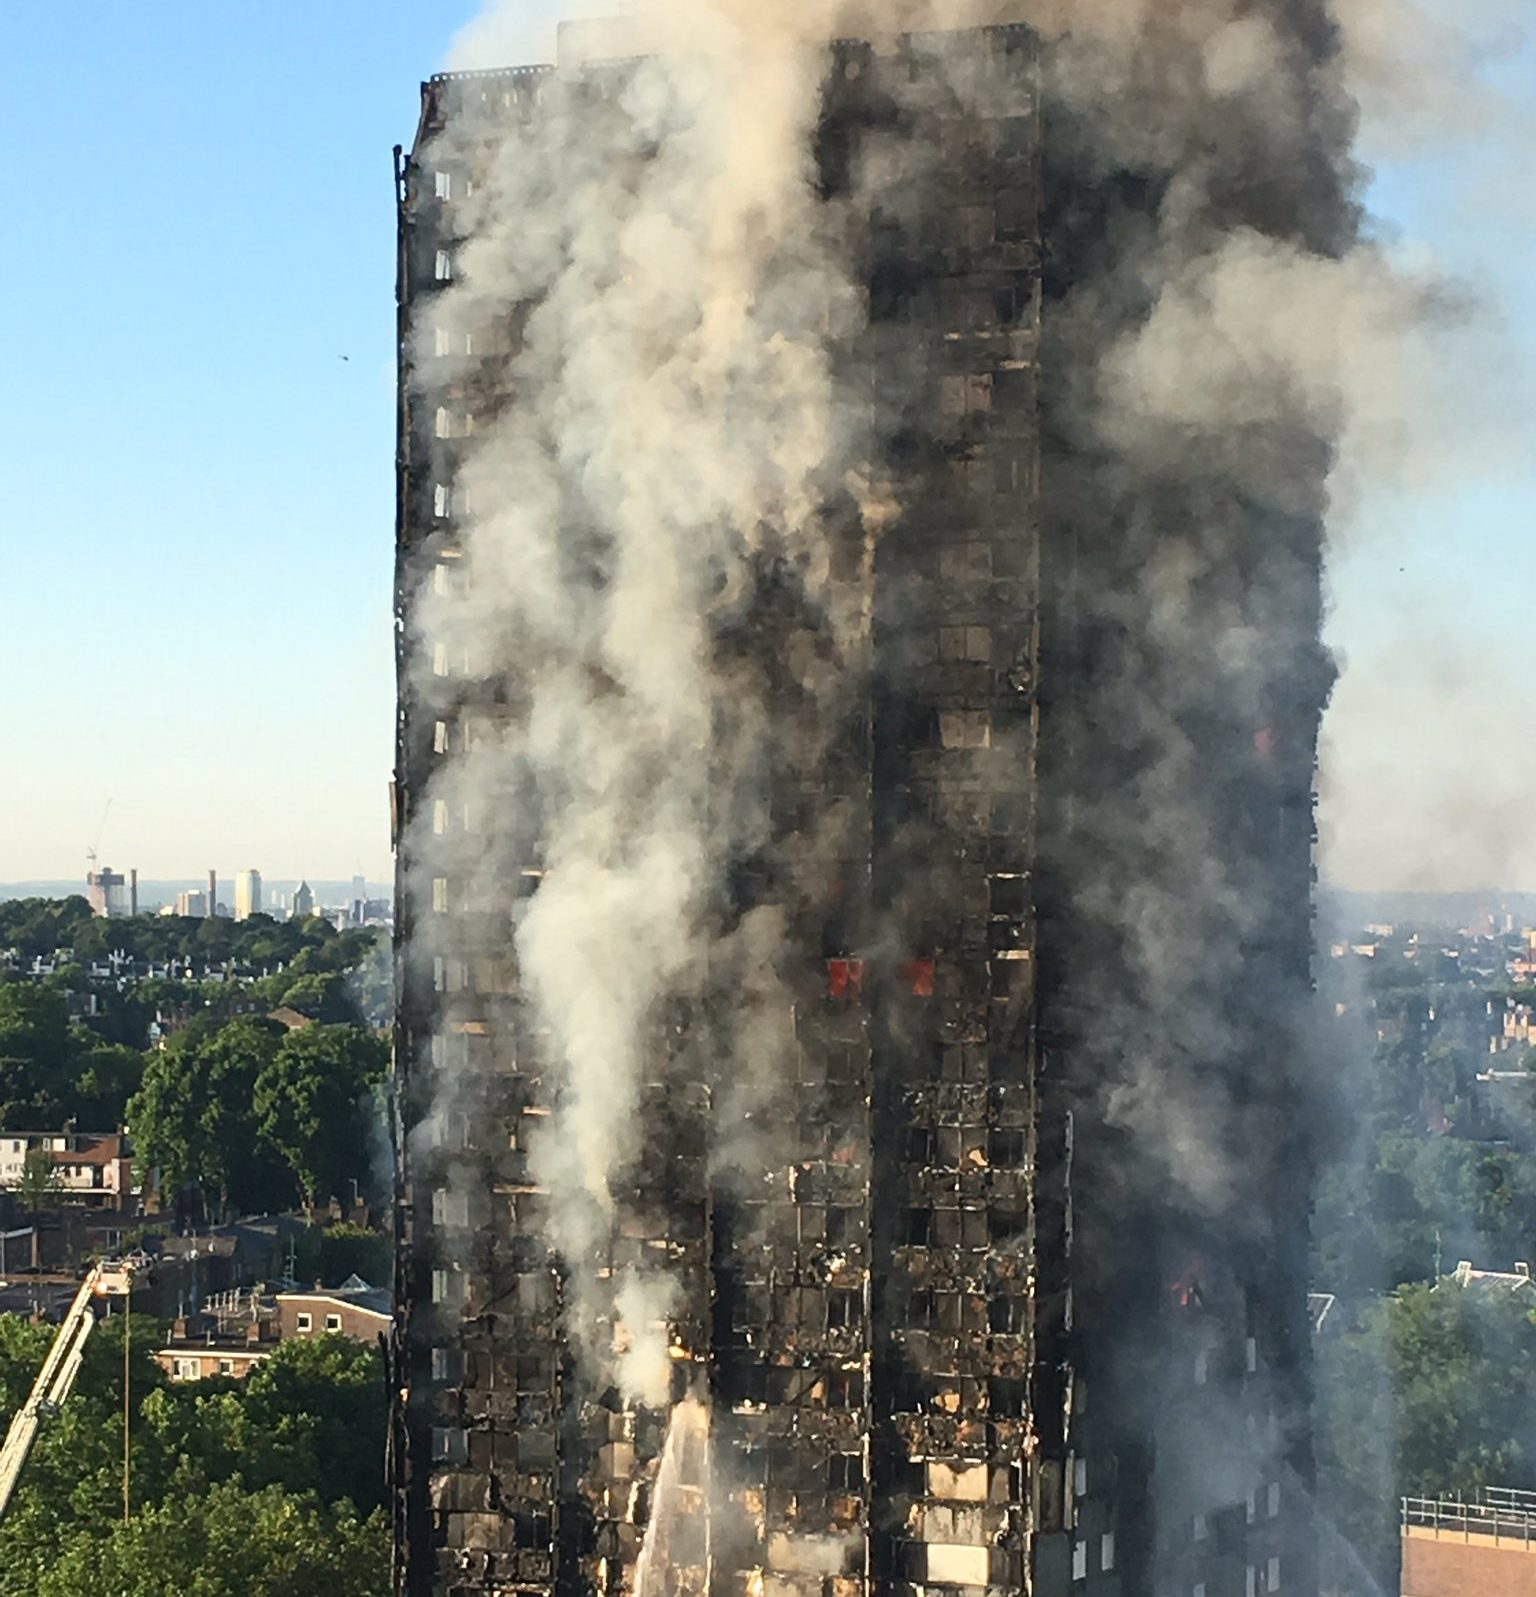 Another Grenfell fraudster faces jail